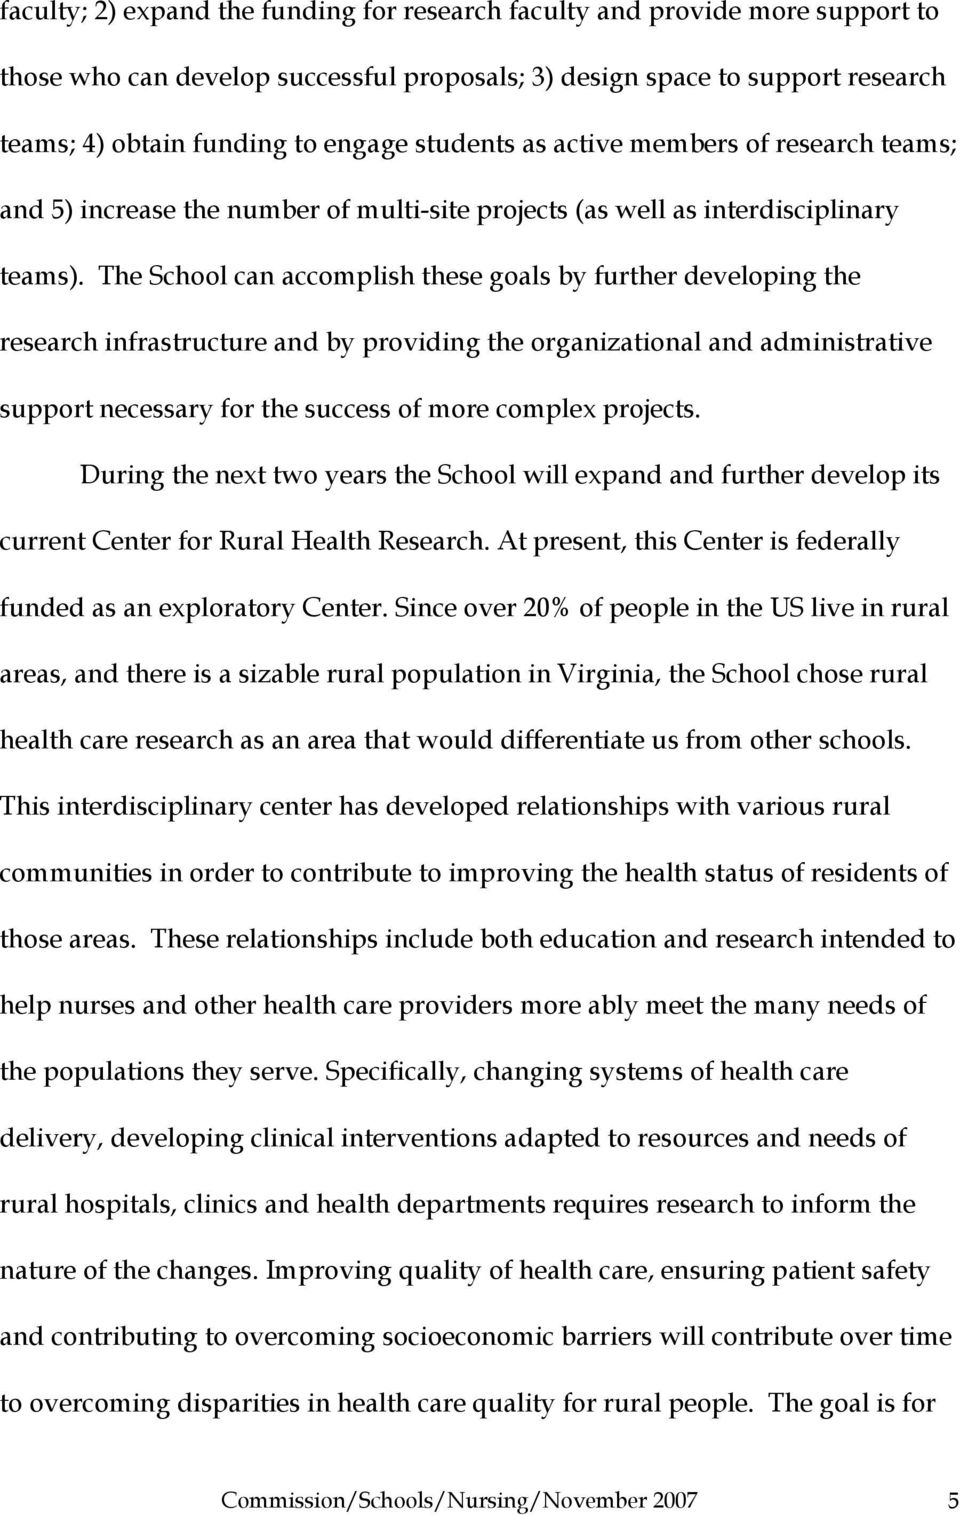 The School can accomplish these goals by further developing the research infrastructure and by providing the organizational and administrative support necessary for the success of more complex